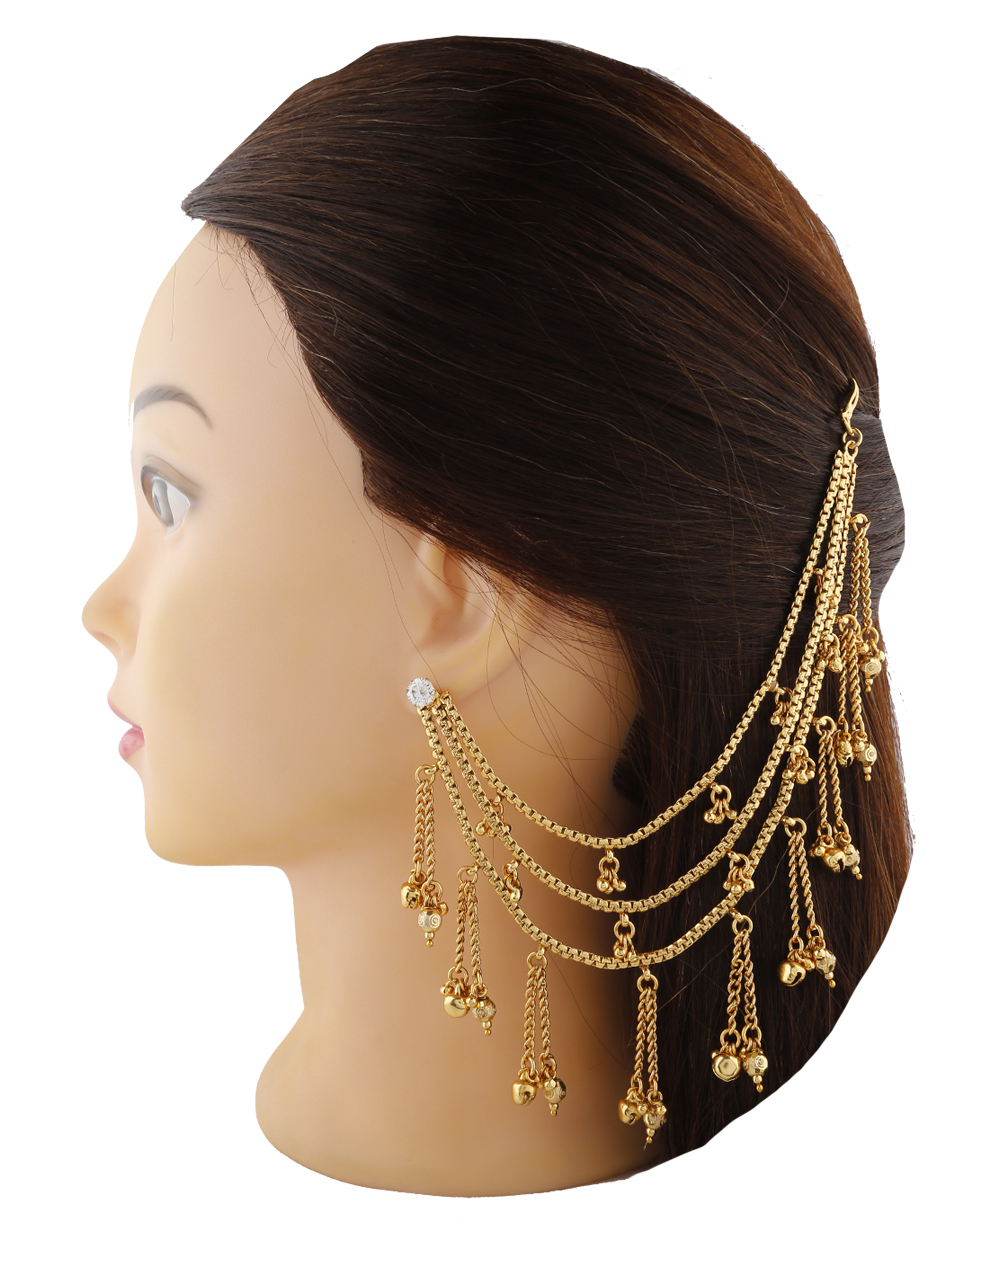 Fashionable Golden Finish With Golden Droplet Kanchain For Bride.